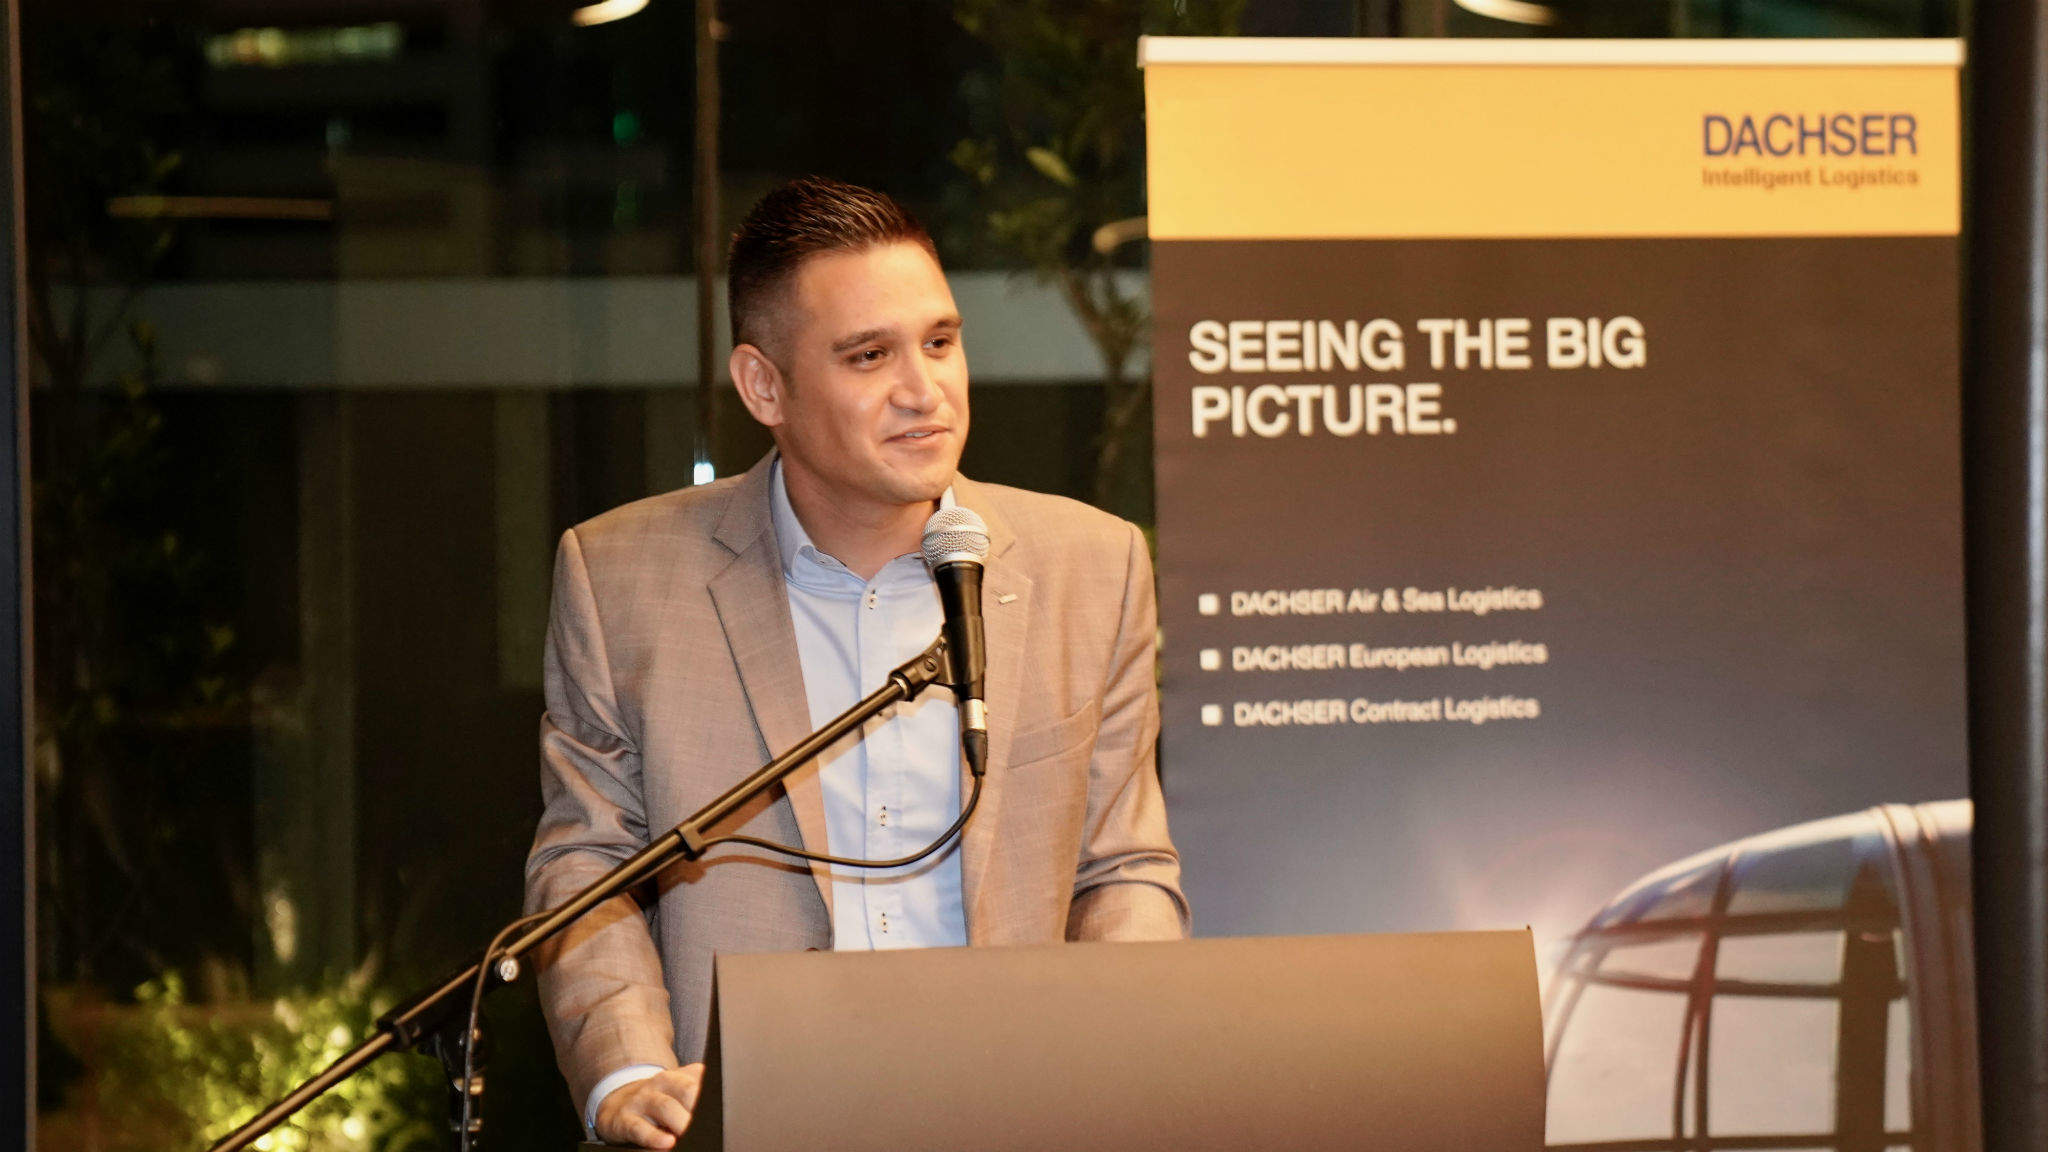 Daniel Pohl, Managing Director Air & Sea Logistics Malaysia, at his welcome speech.